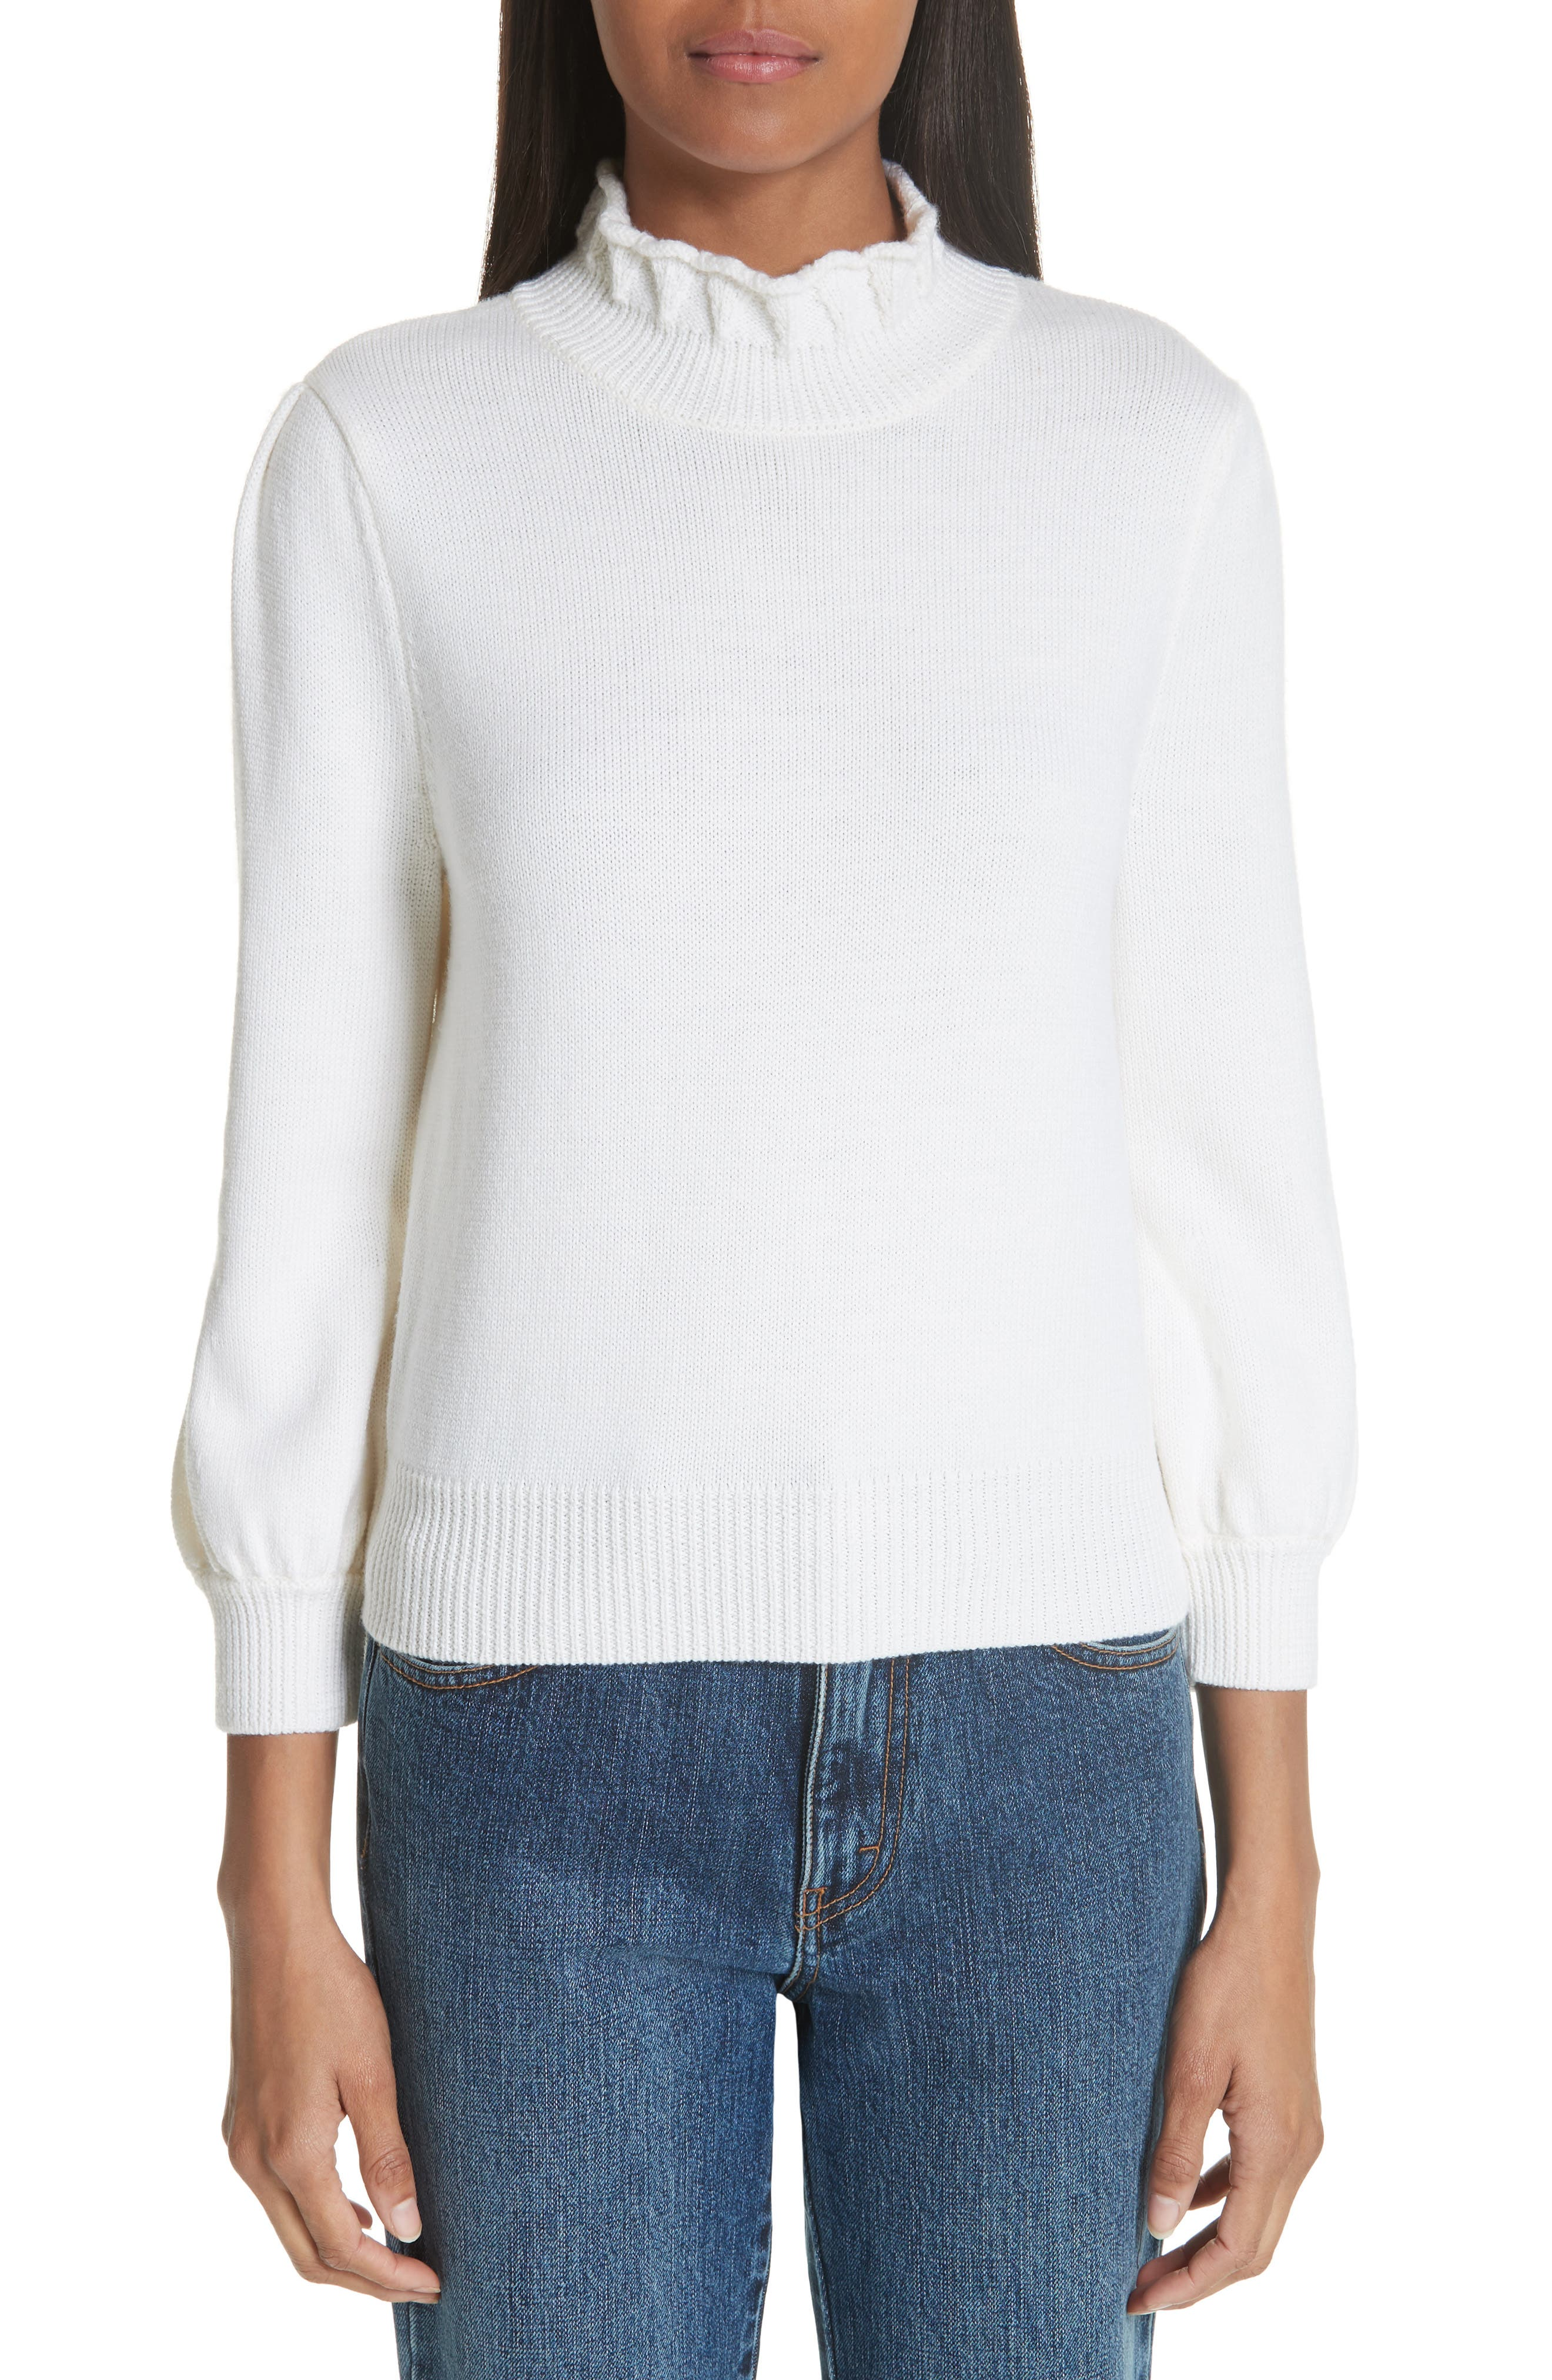 Co Essentials High Collar Wool Sweater, Ivory